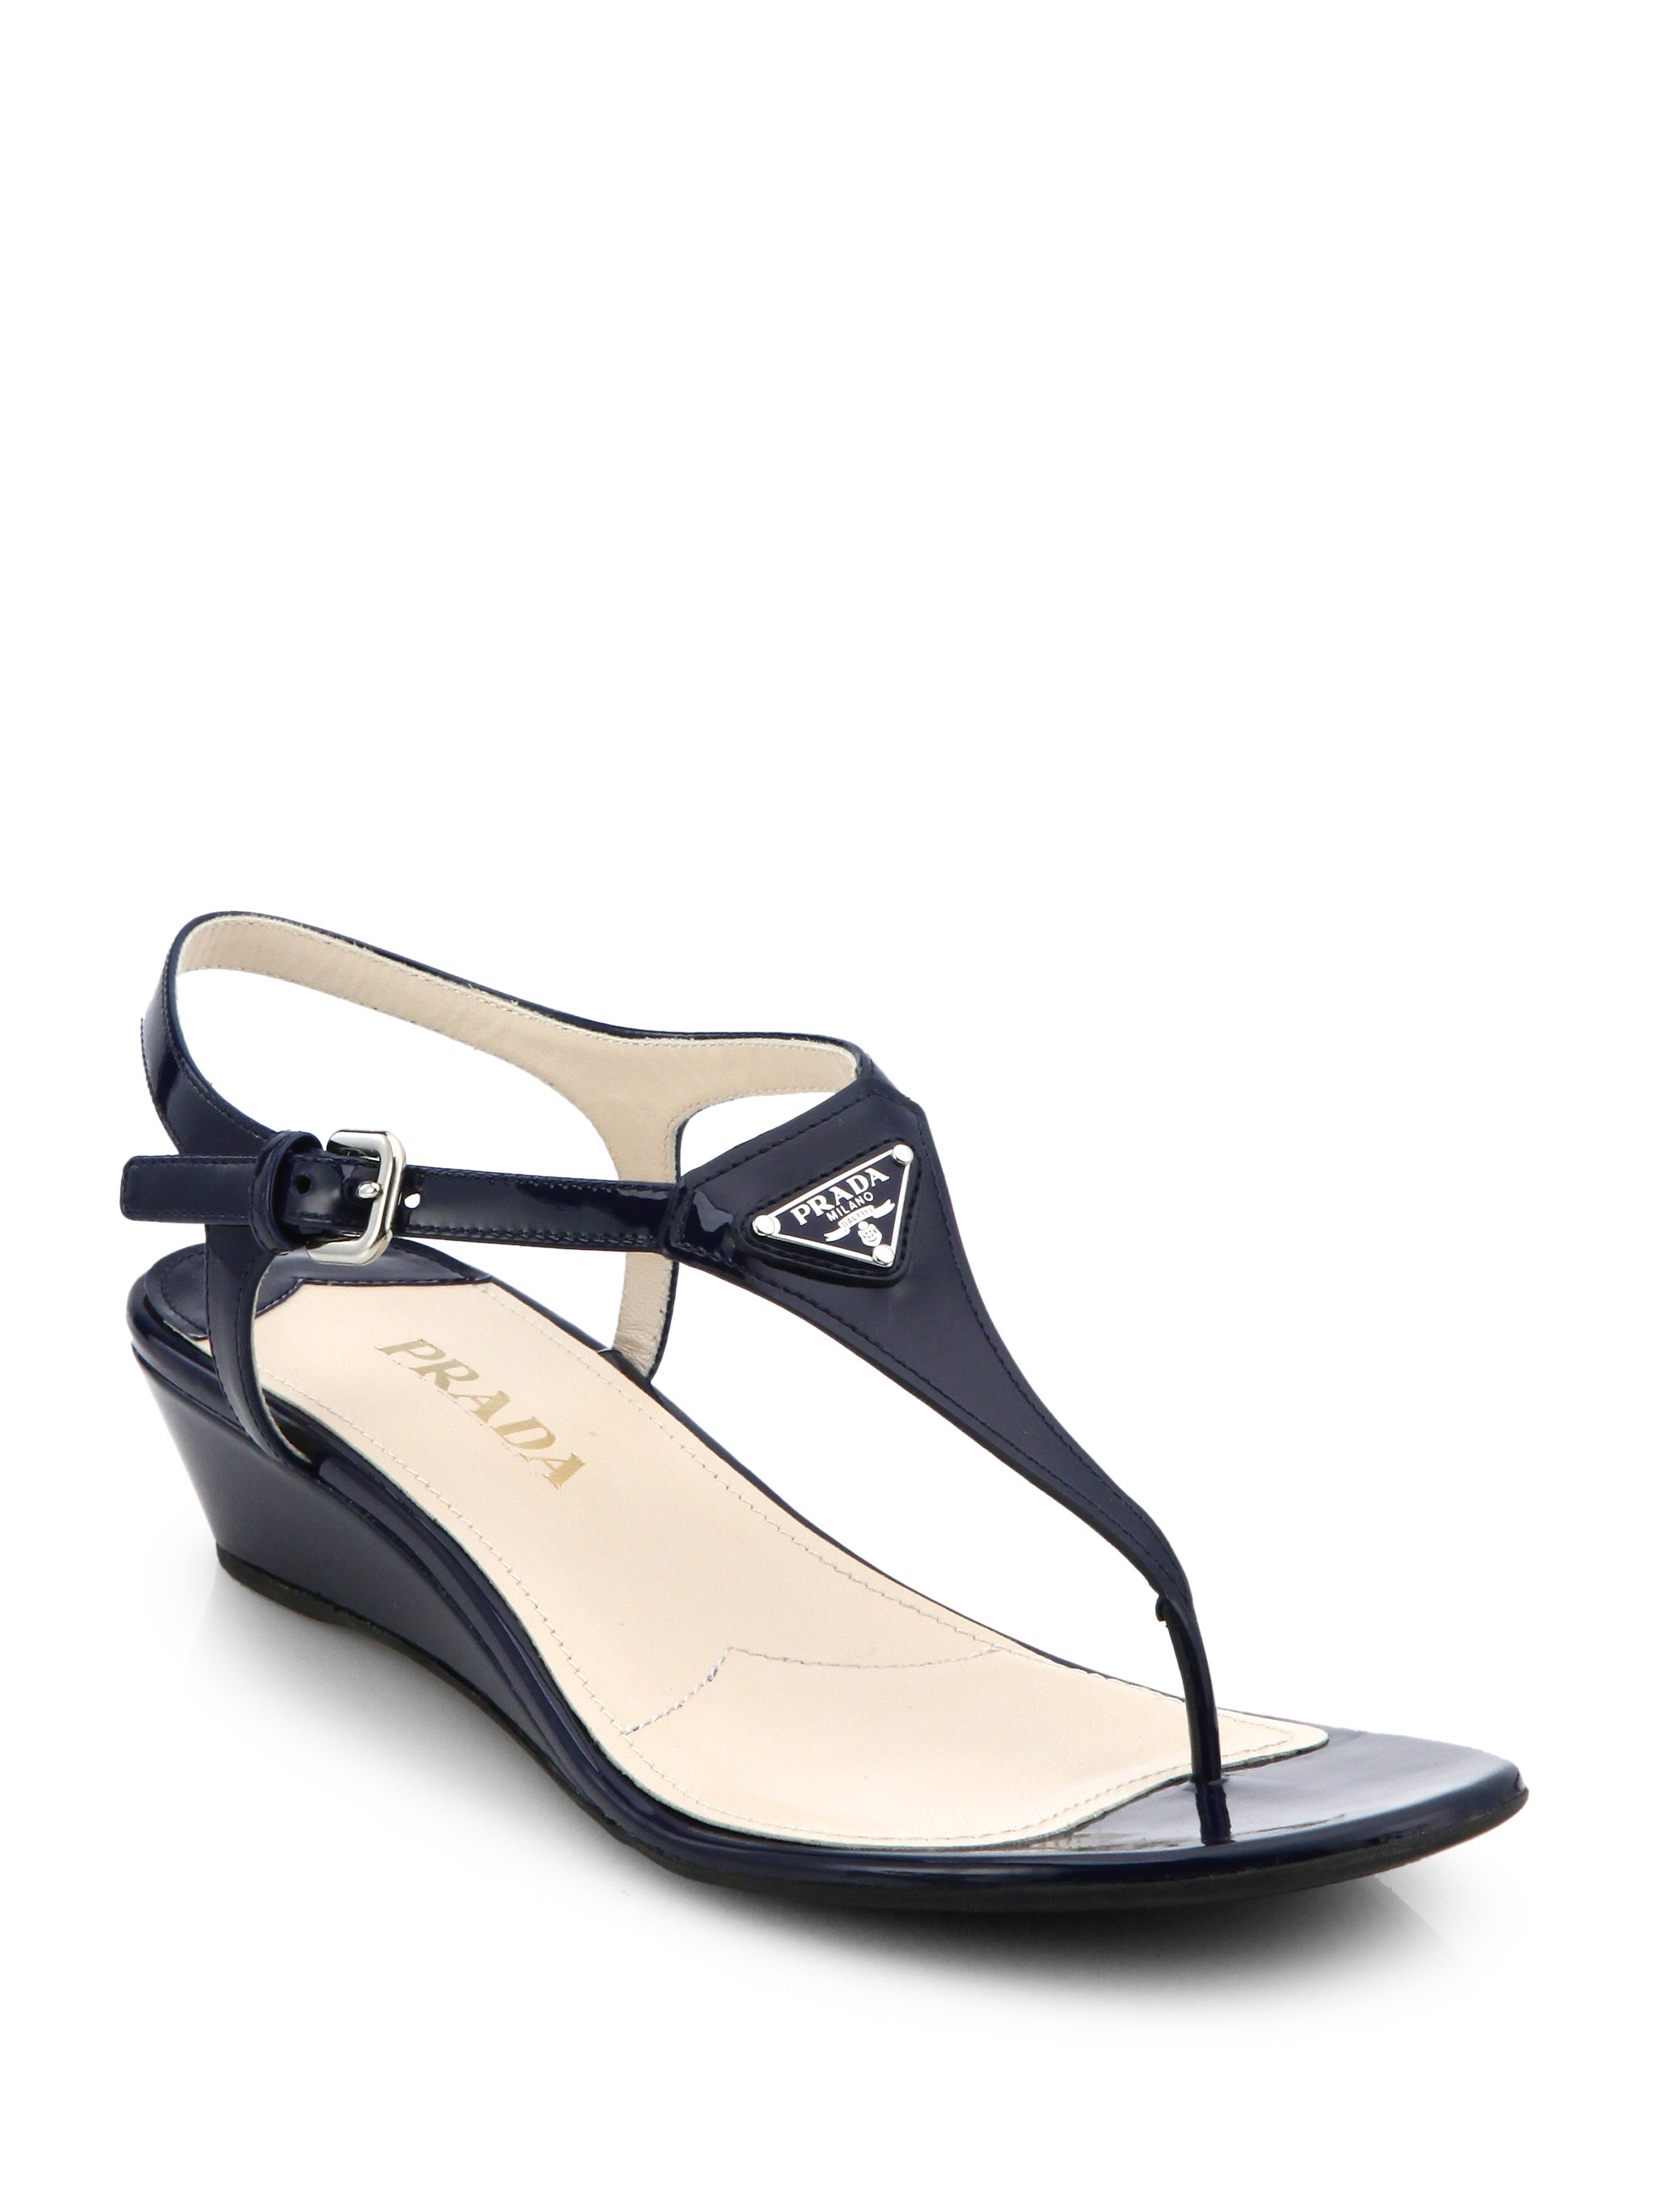 Navy Blue Sandals Gallery